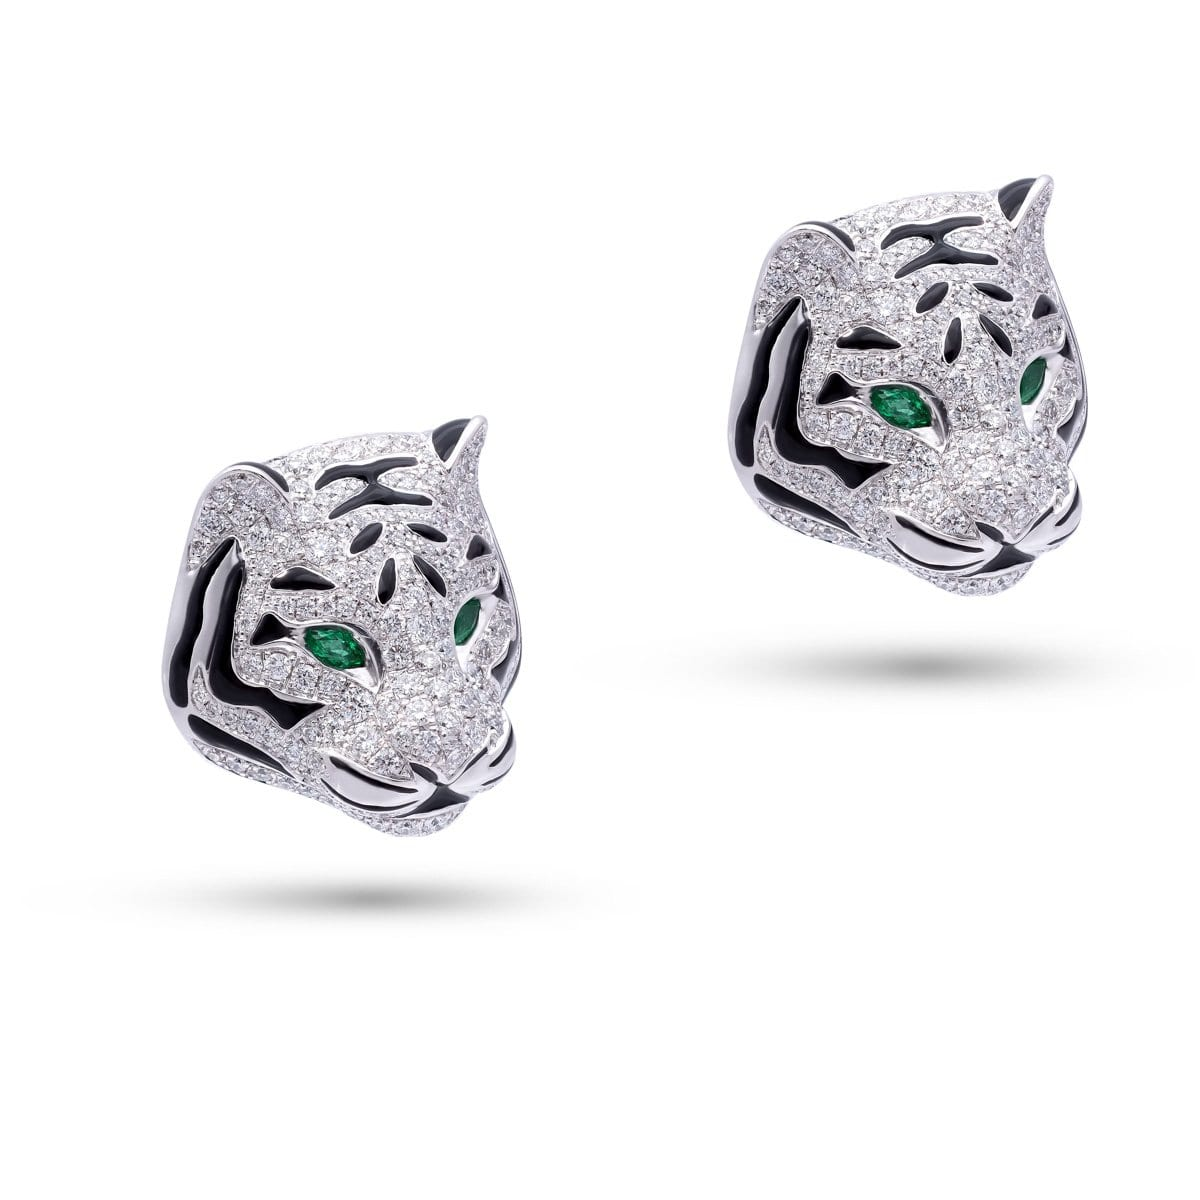 WILD LIFE FELINE Earrings - STENZHORN JEWELLERY